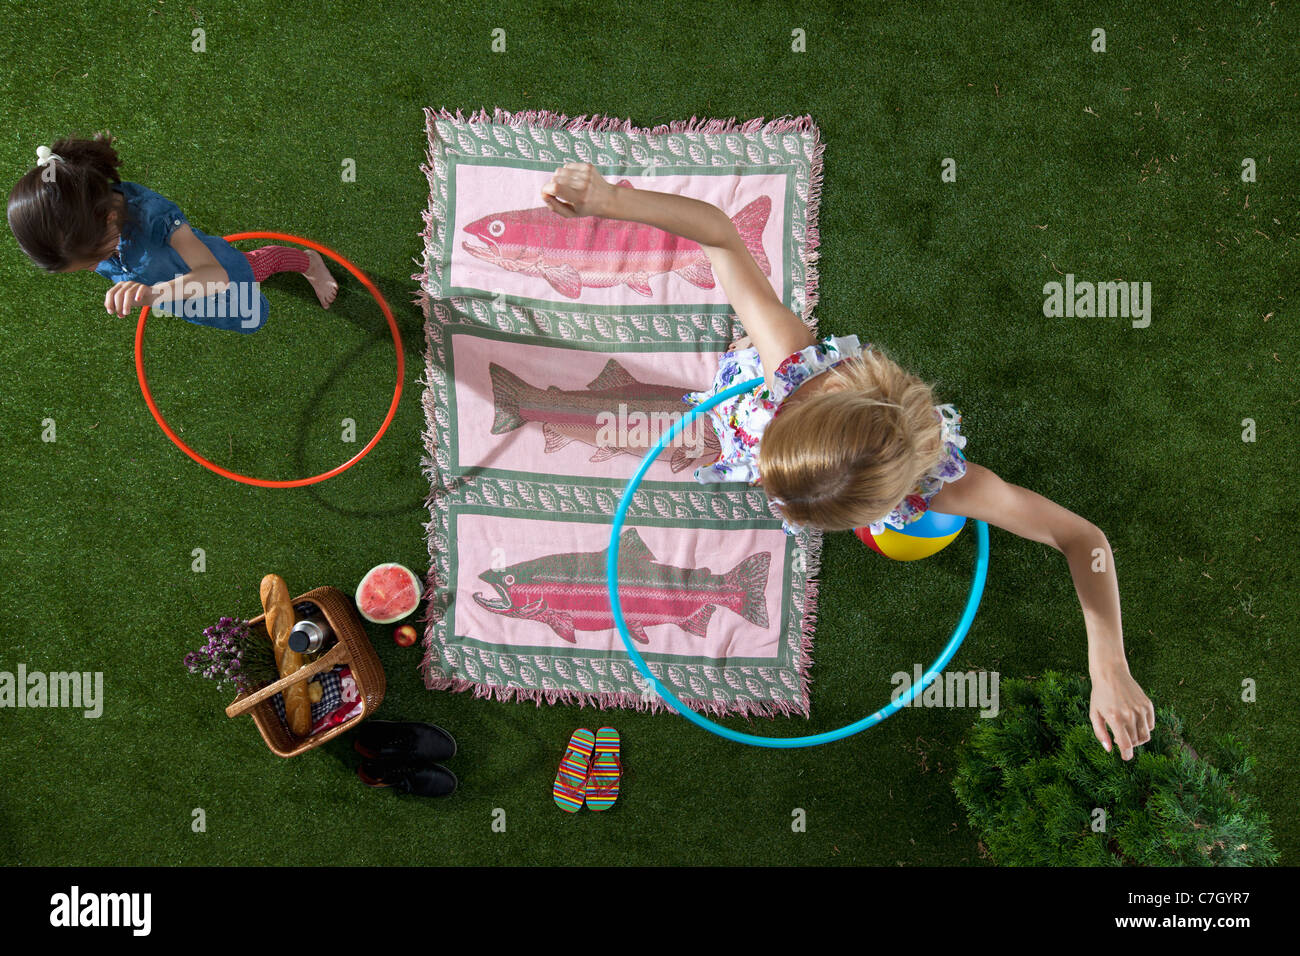 A mother and daughter using hula hoops at a picnic in the park, overhead view Stock Photo